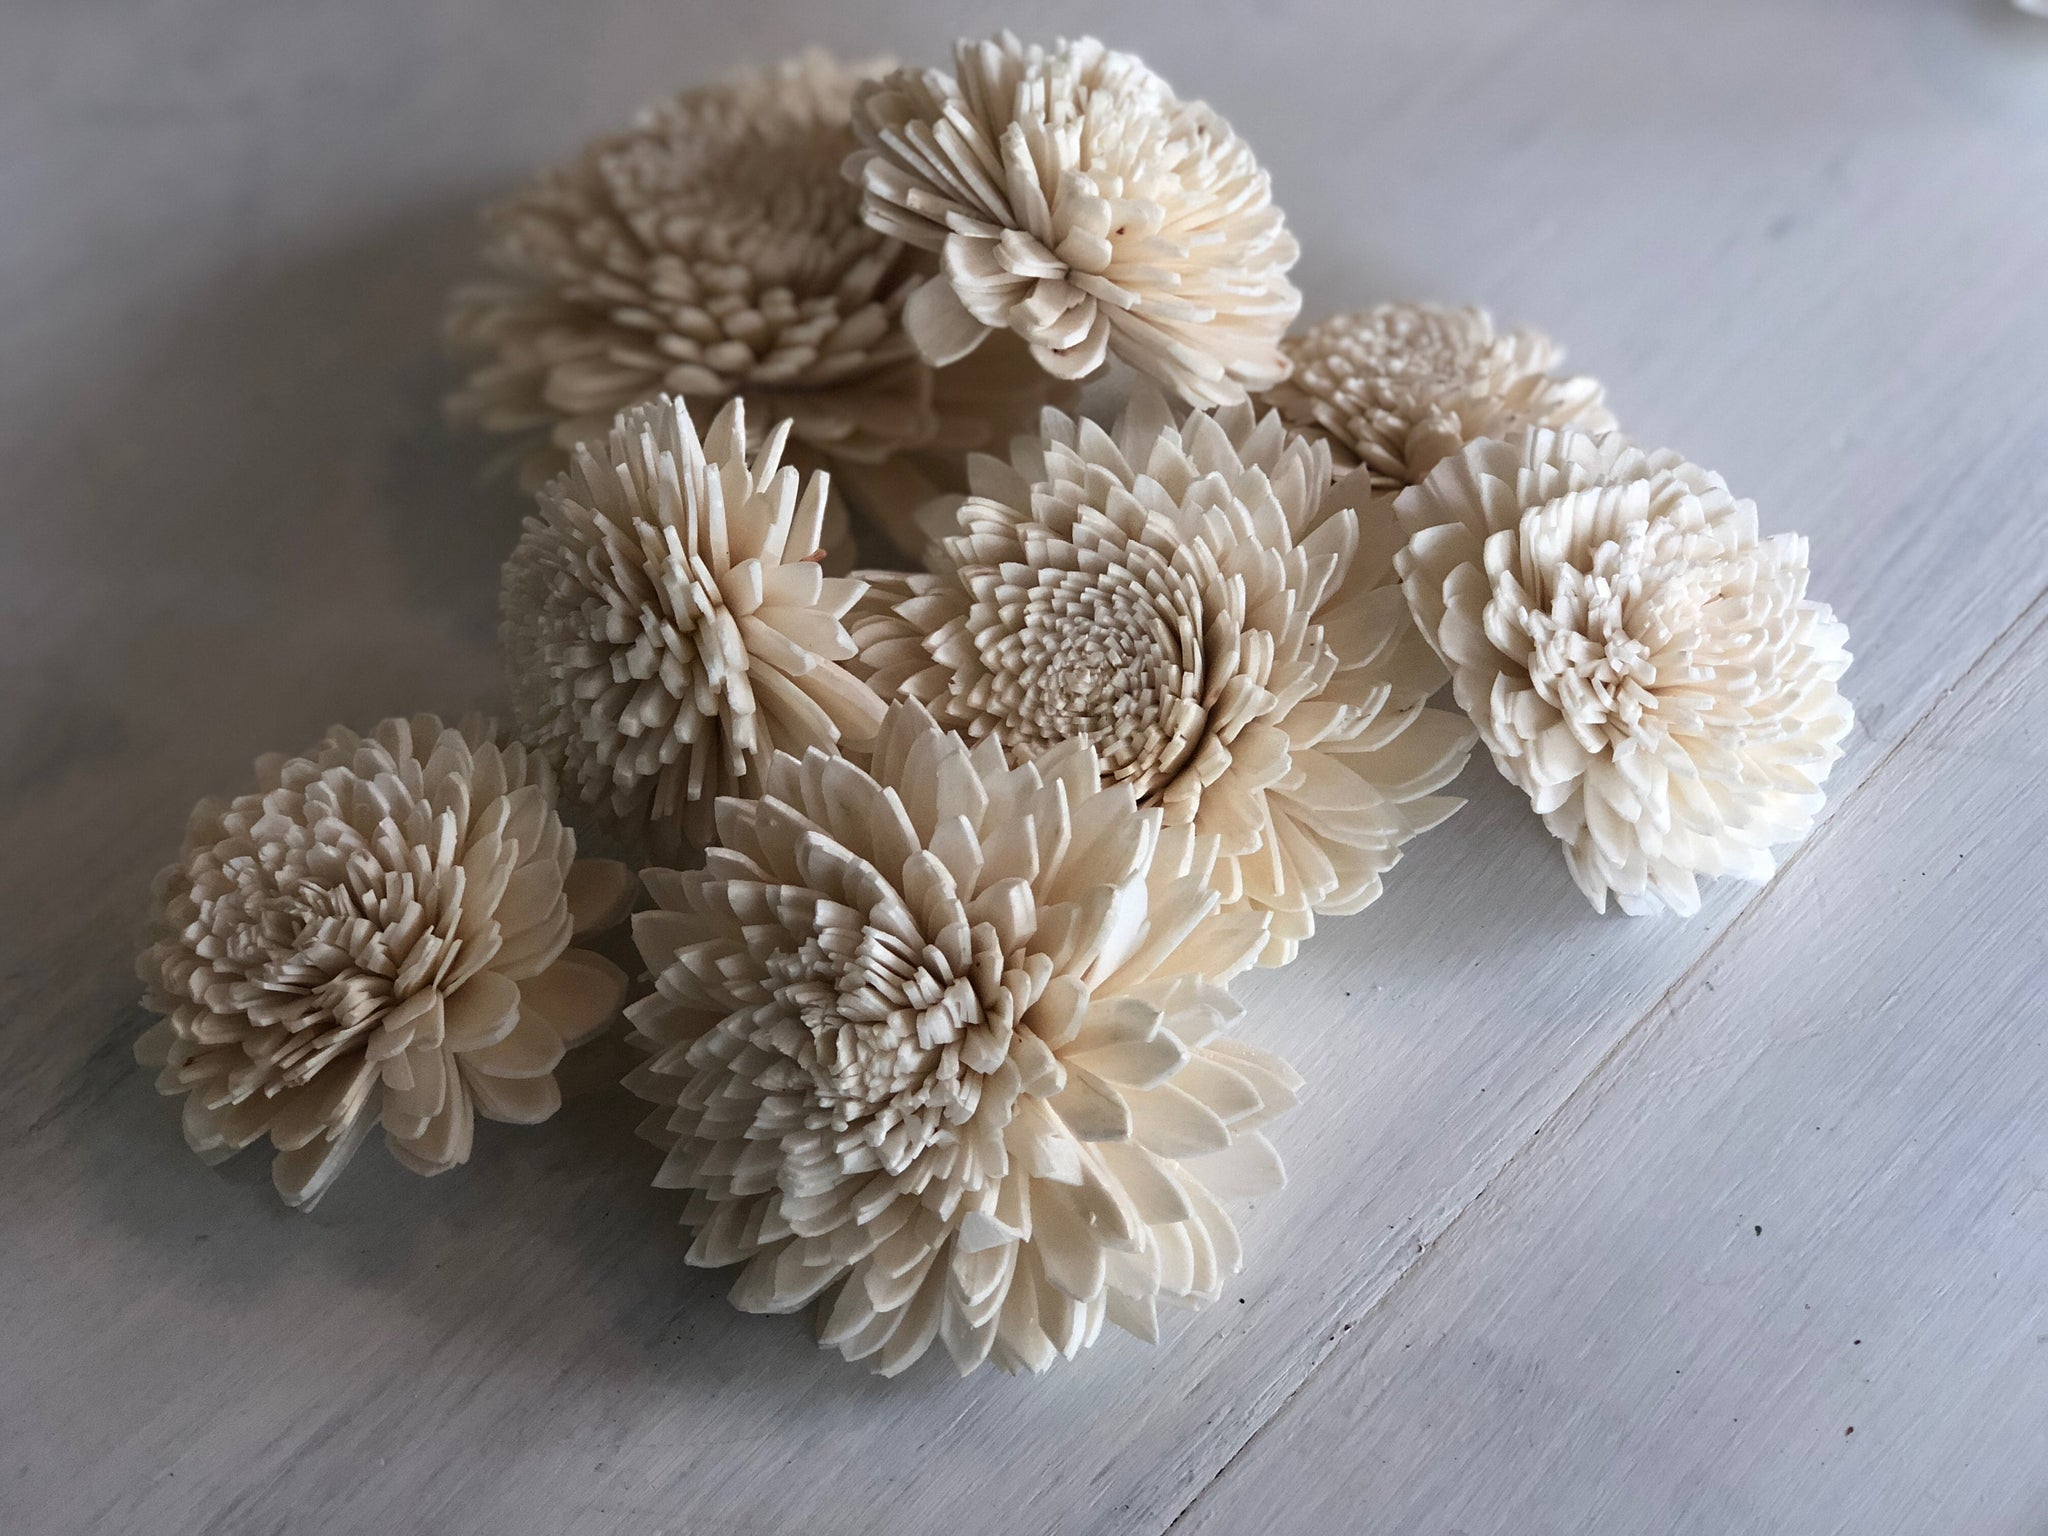 Elane Zinnia Blossom - Small - Wood Sola Flower - Loose Flowers - Wooden Flowers - Wedding Bouquet Flowers - DIY Bride